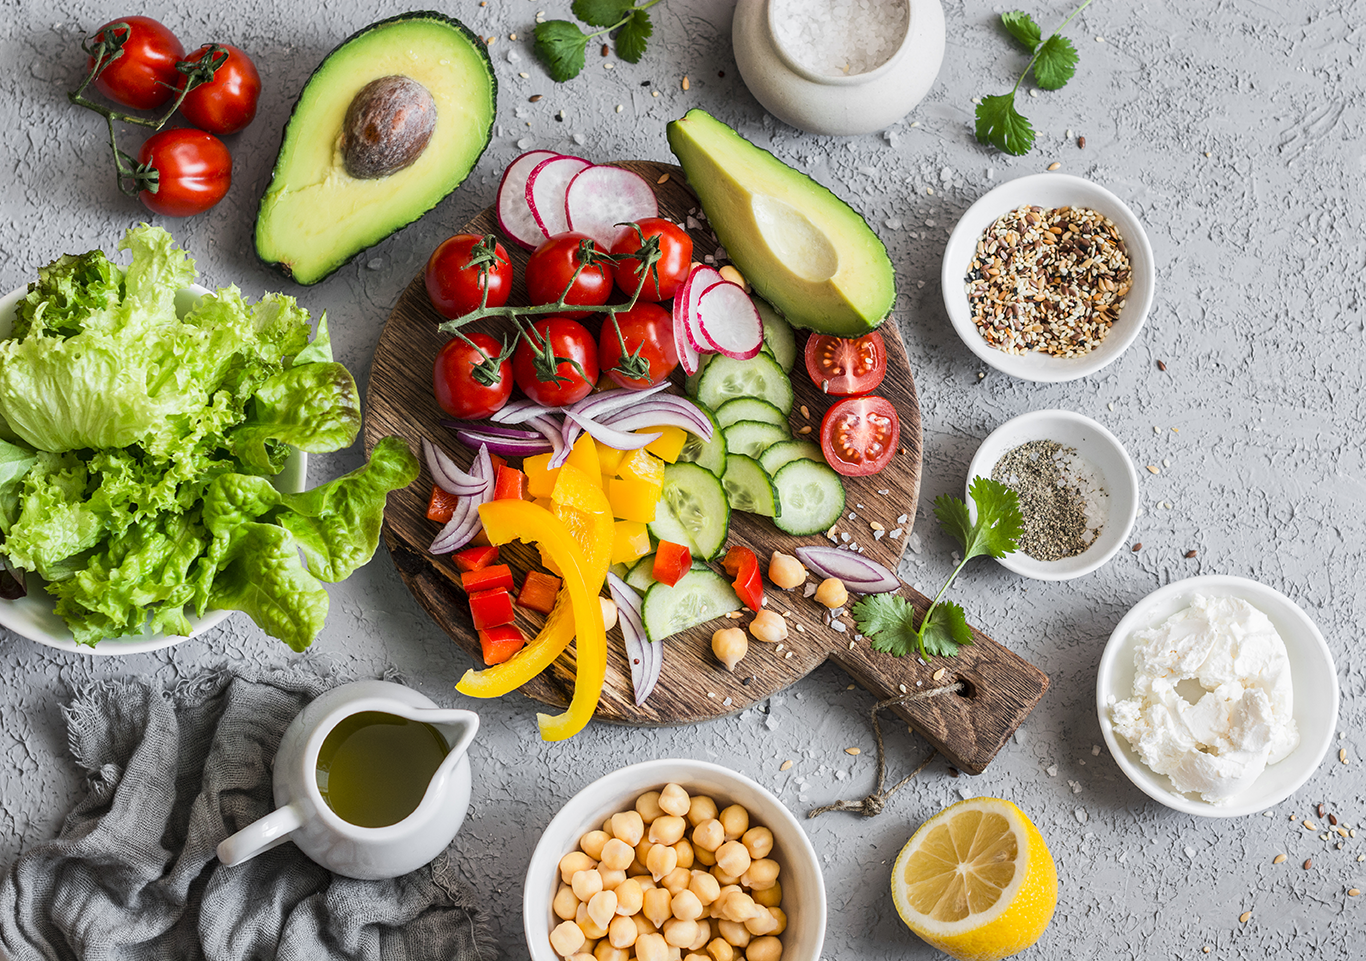 When Inflammation Causes Harm: A Dietitian Explains How Inflammation Can Impact Human Health